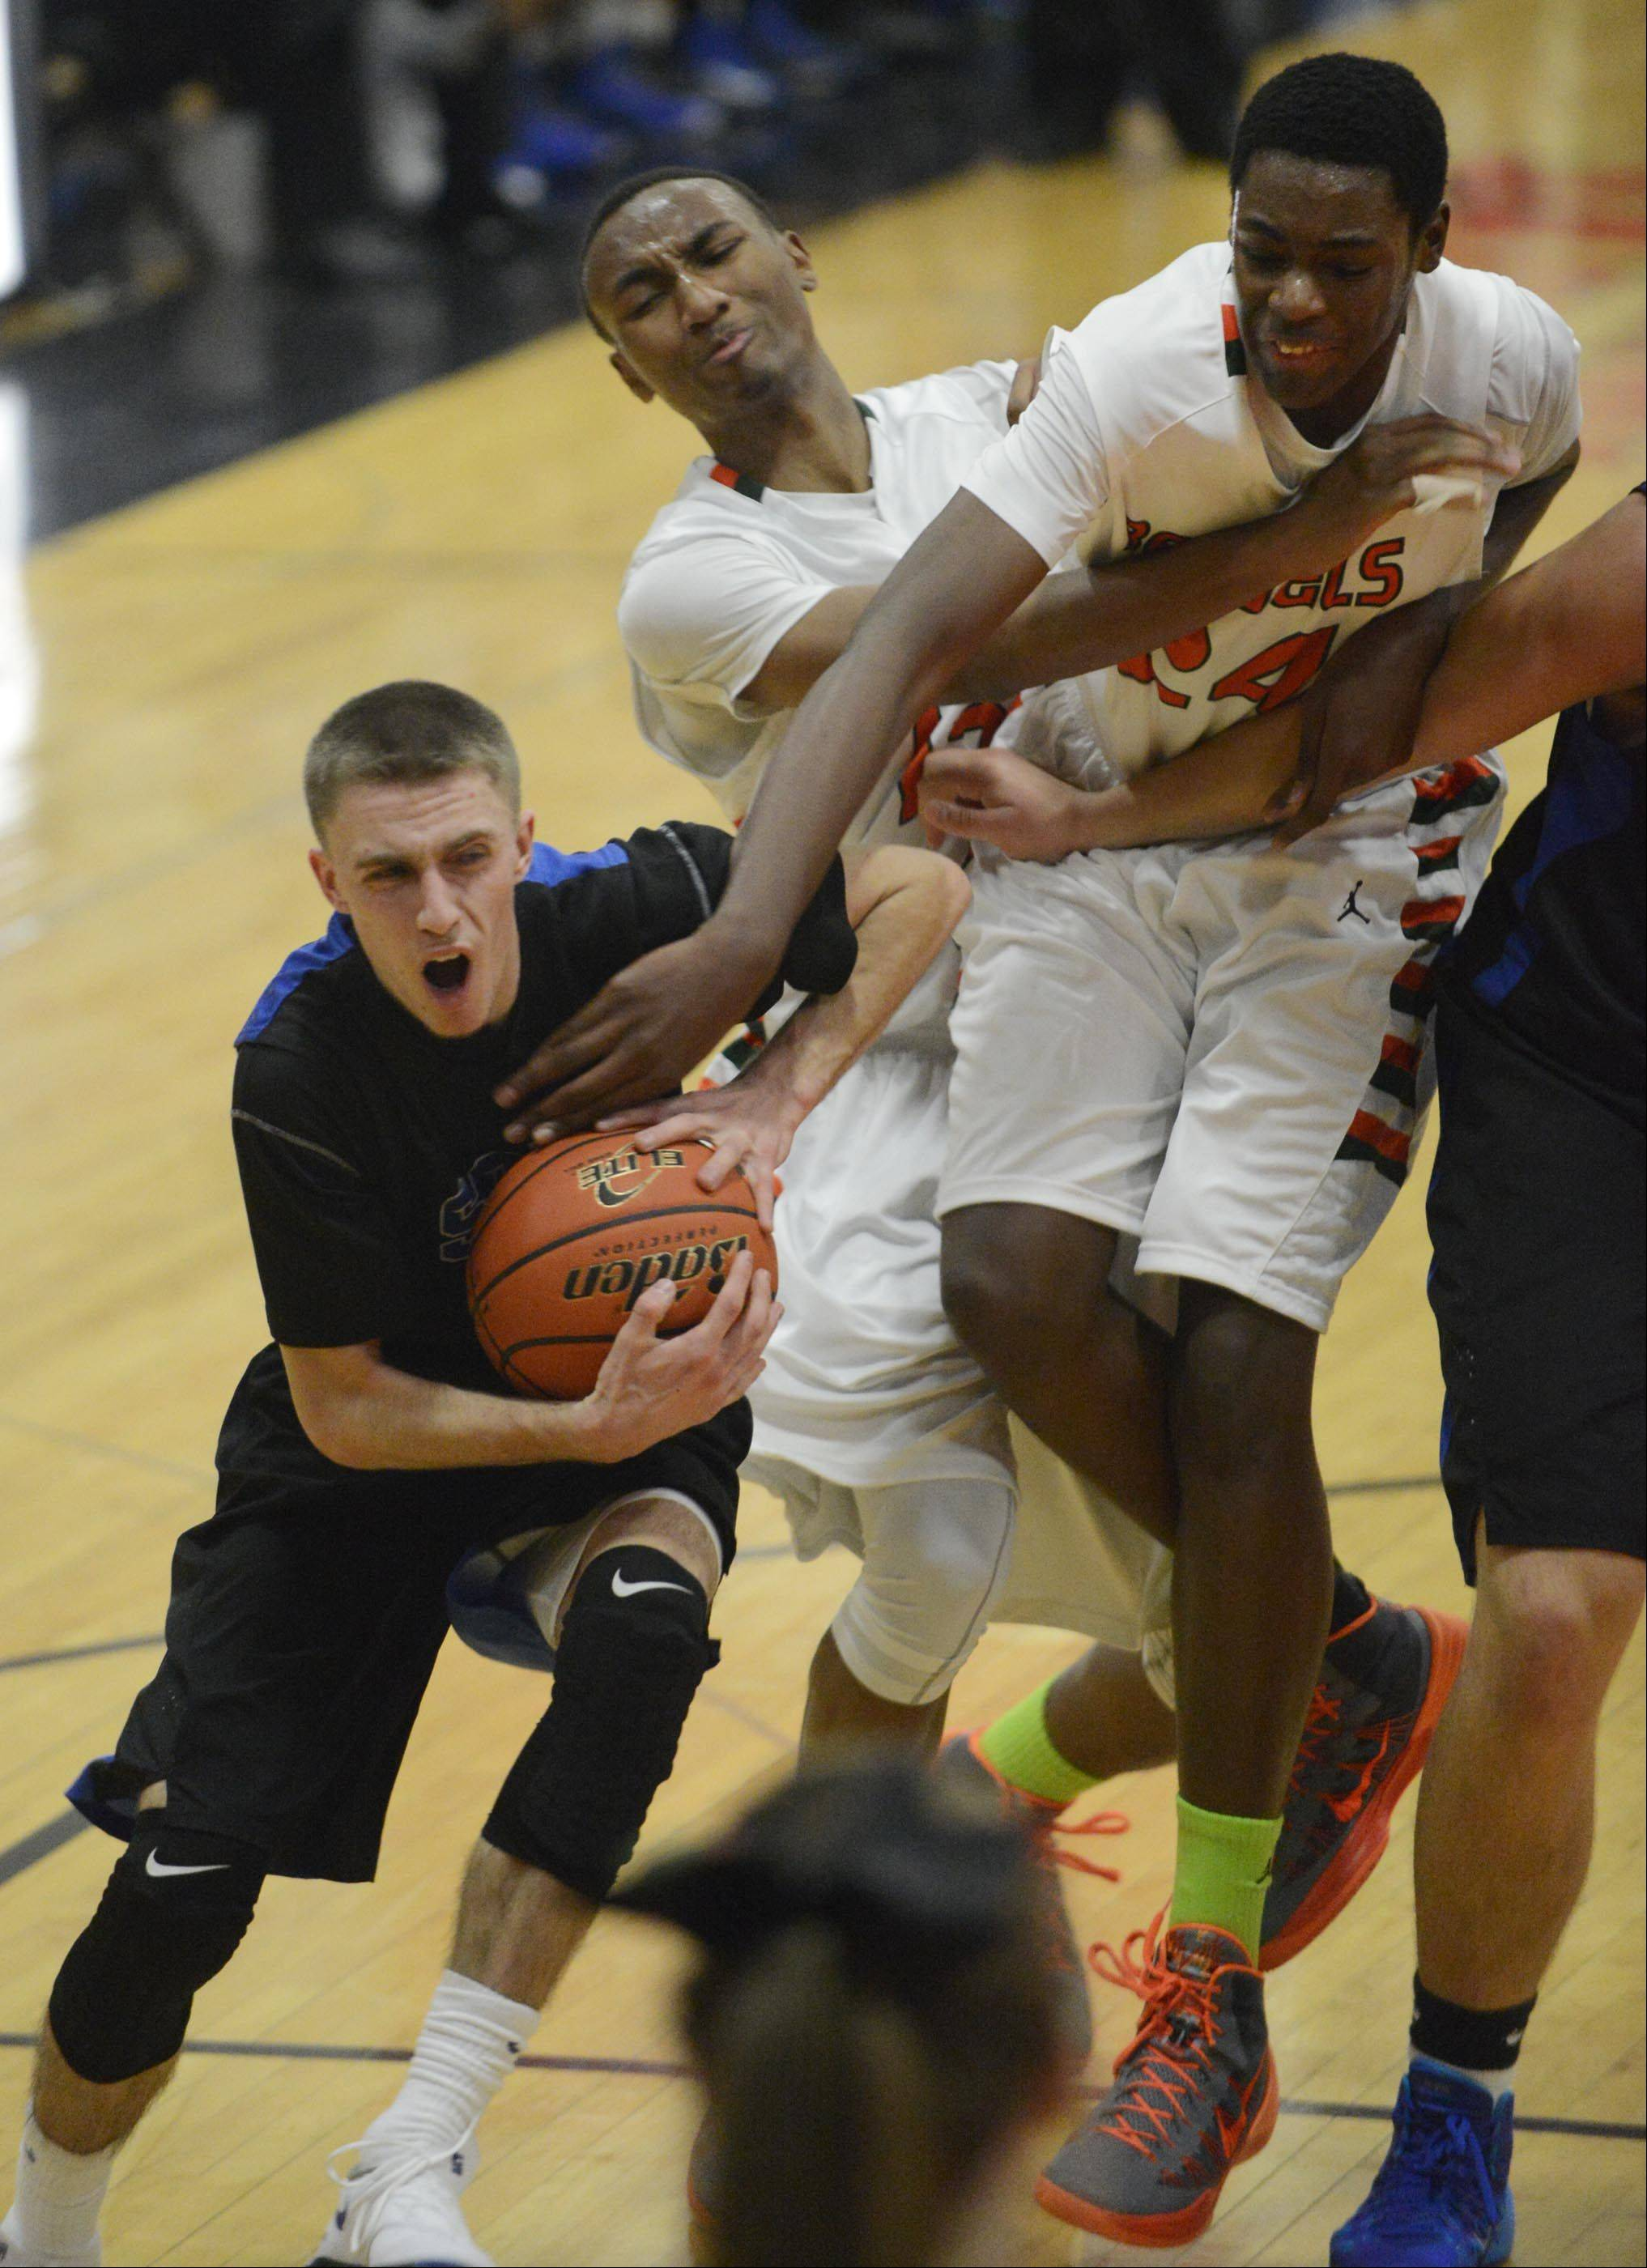 St. Charles North's Alec Goetz drives around Plainfield East's Myles Ward and James Claar Tuesday in St. Charles.